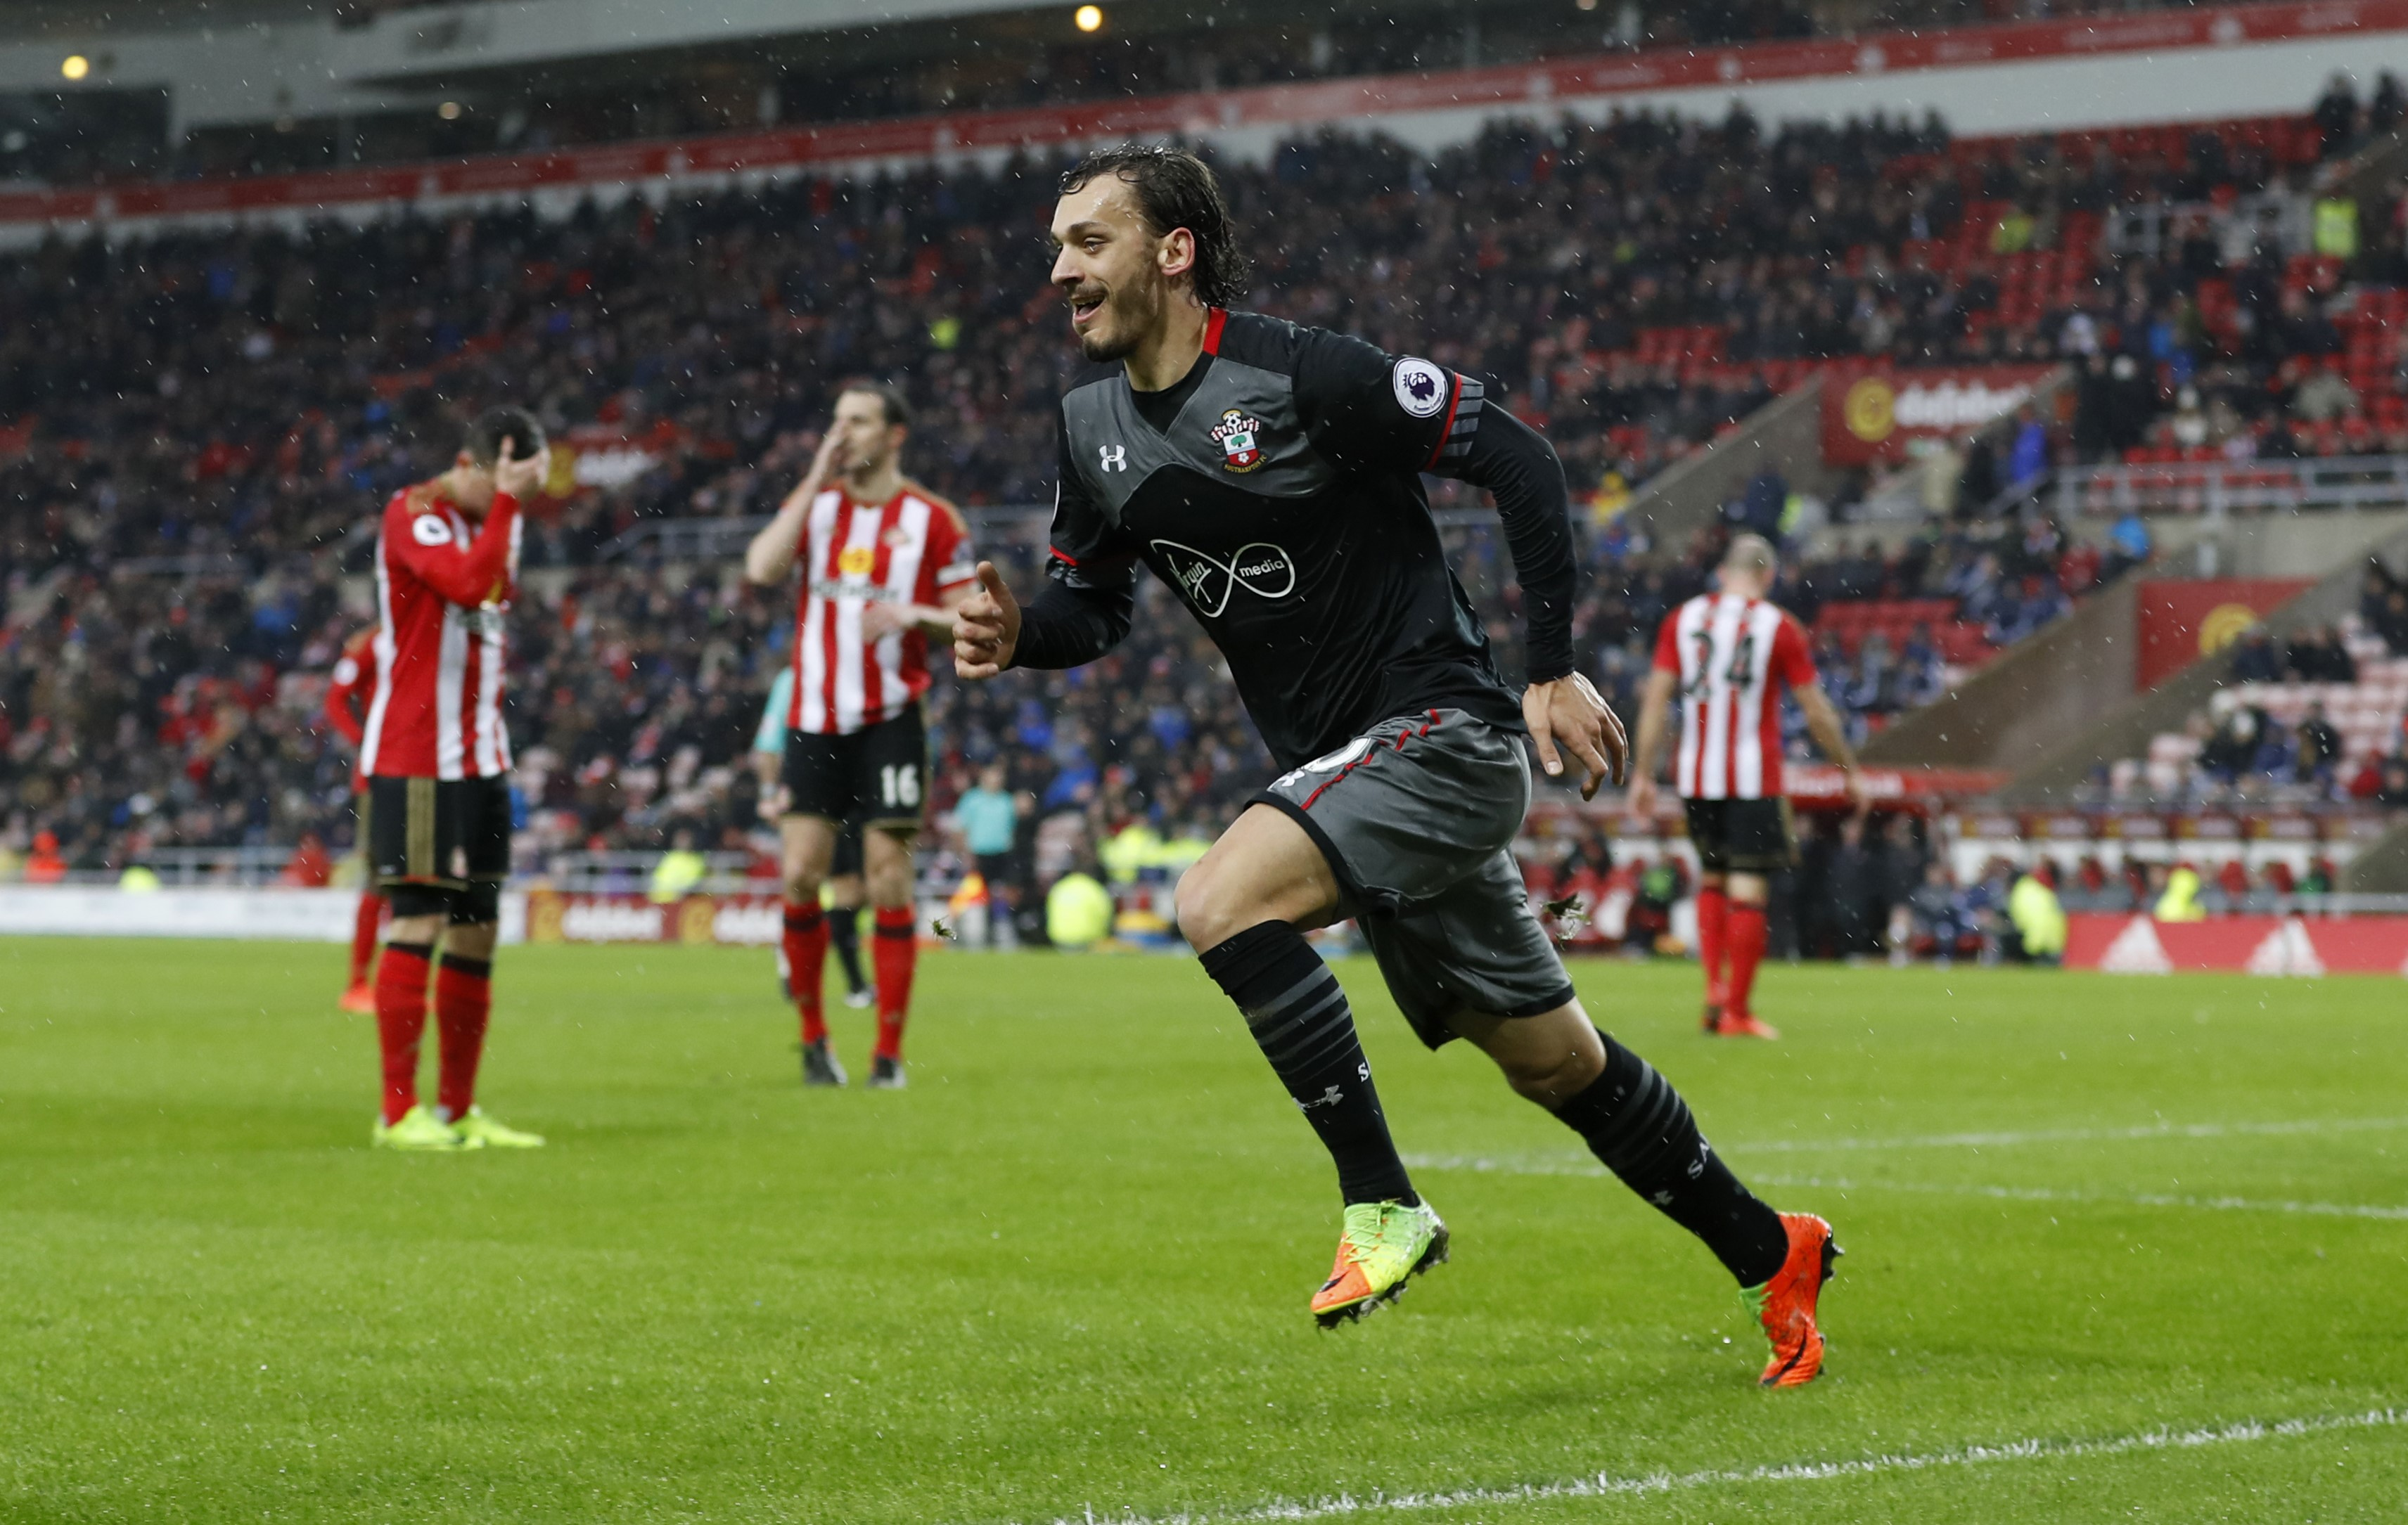 Southampton's Manolo Gabbiadini celebrates scoring their second goal